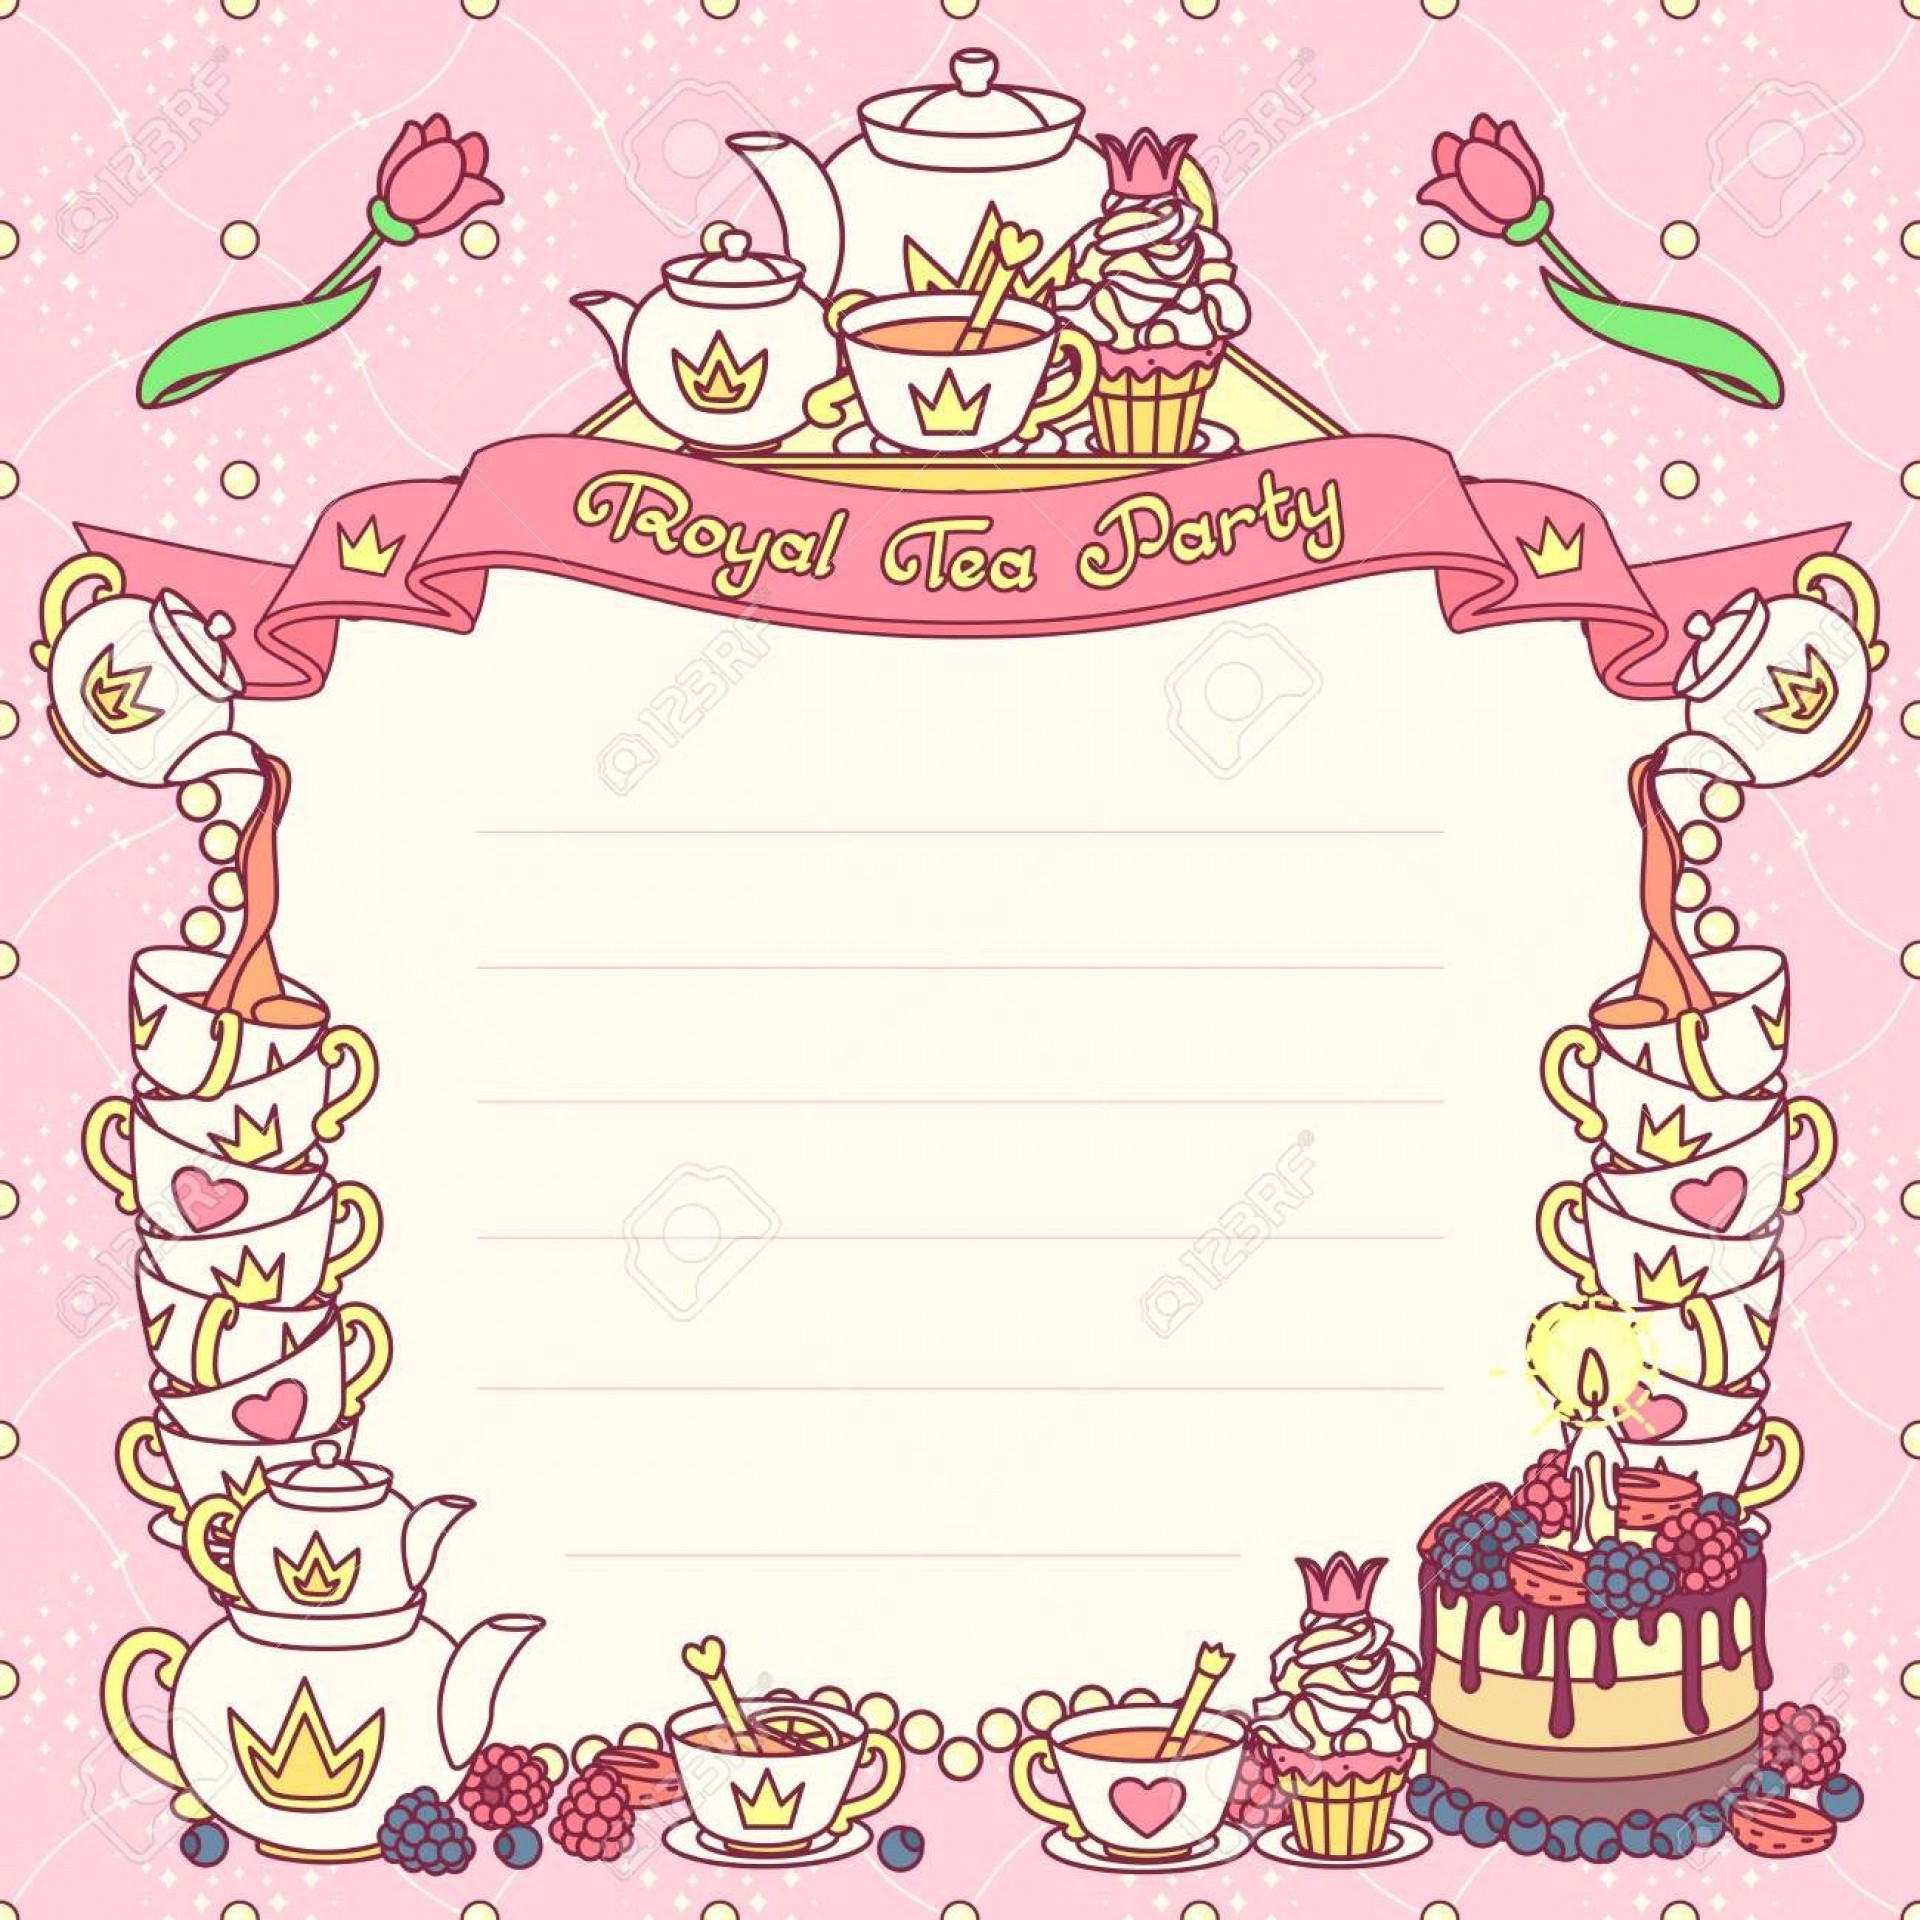 006 Sensational Tea Party Invitation Template Picture  Online Letter1920